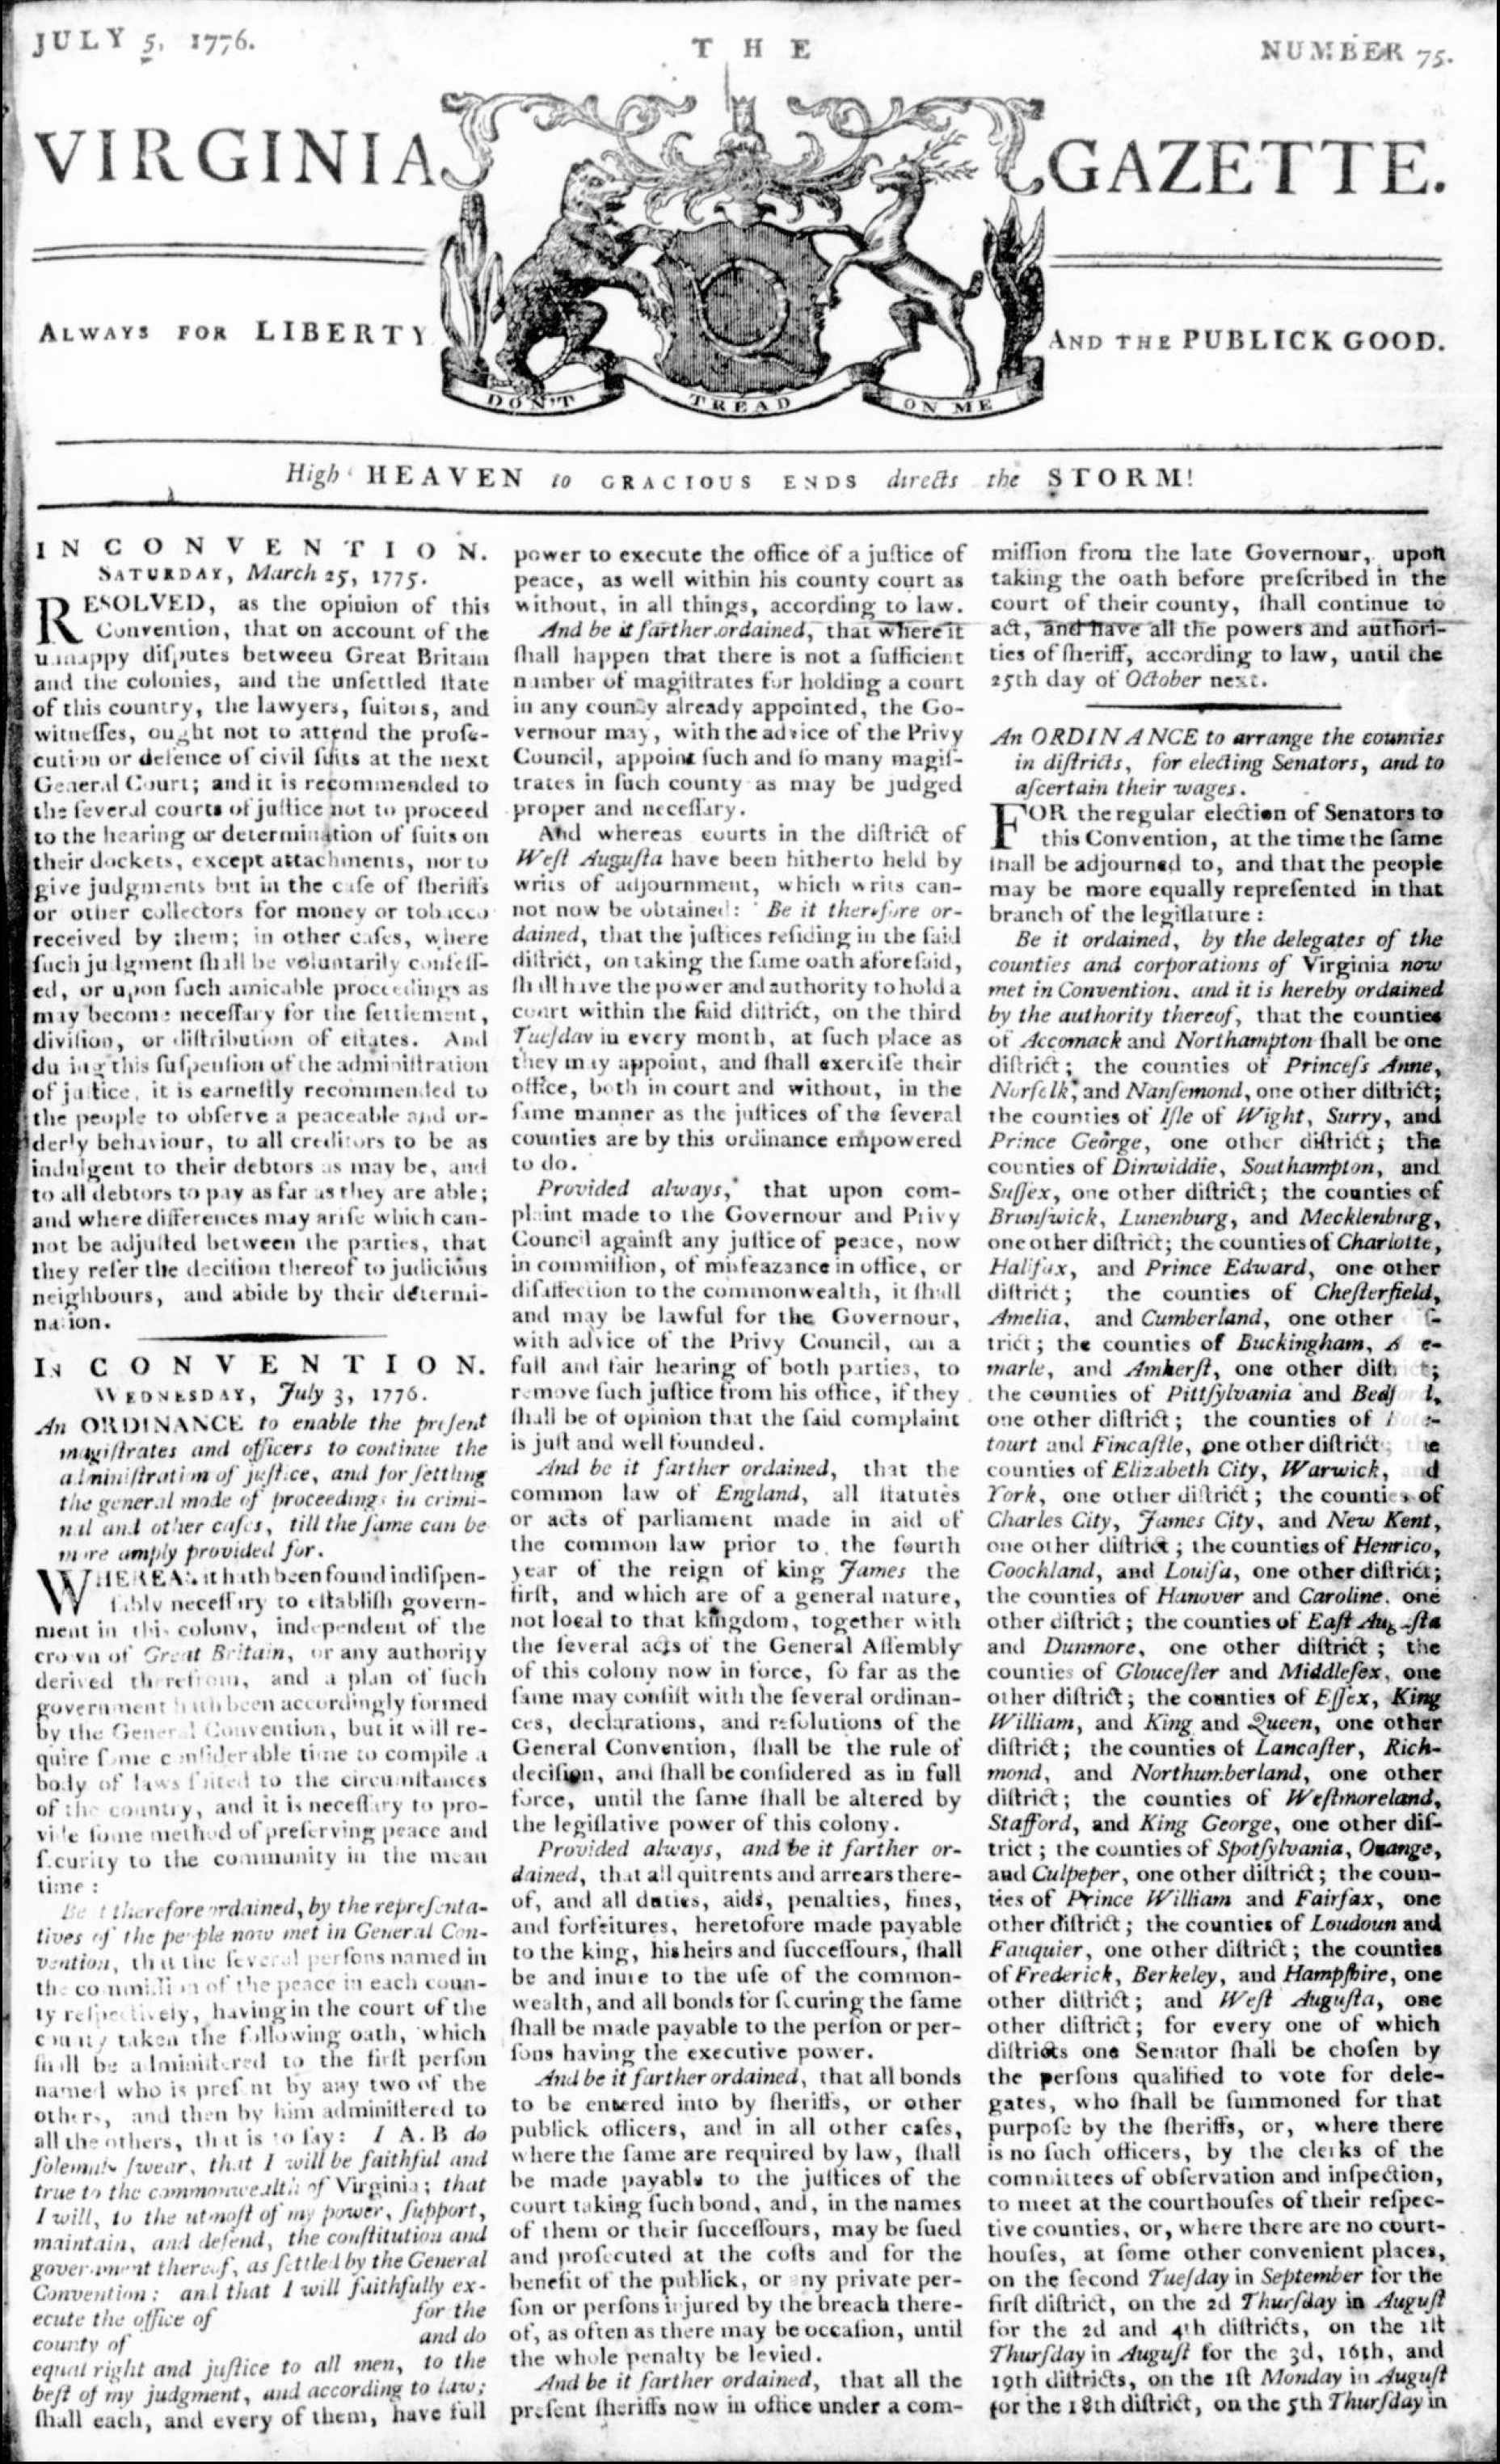 Virgina-Declares-Indepence-from-Britain-Newspaper-Article-Virginia-Gazette-July-5-1776